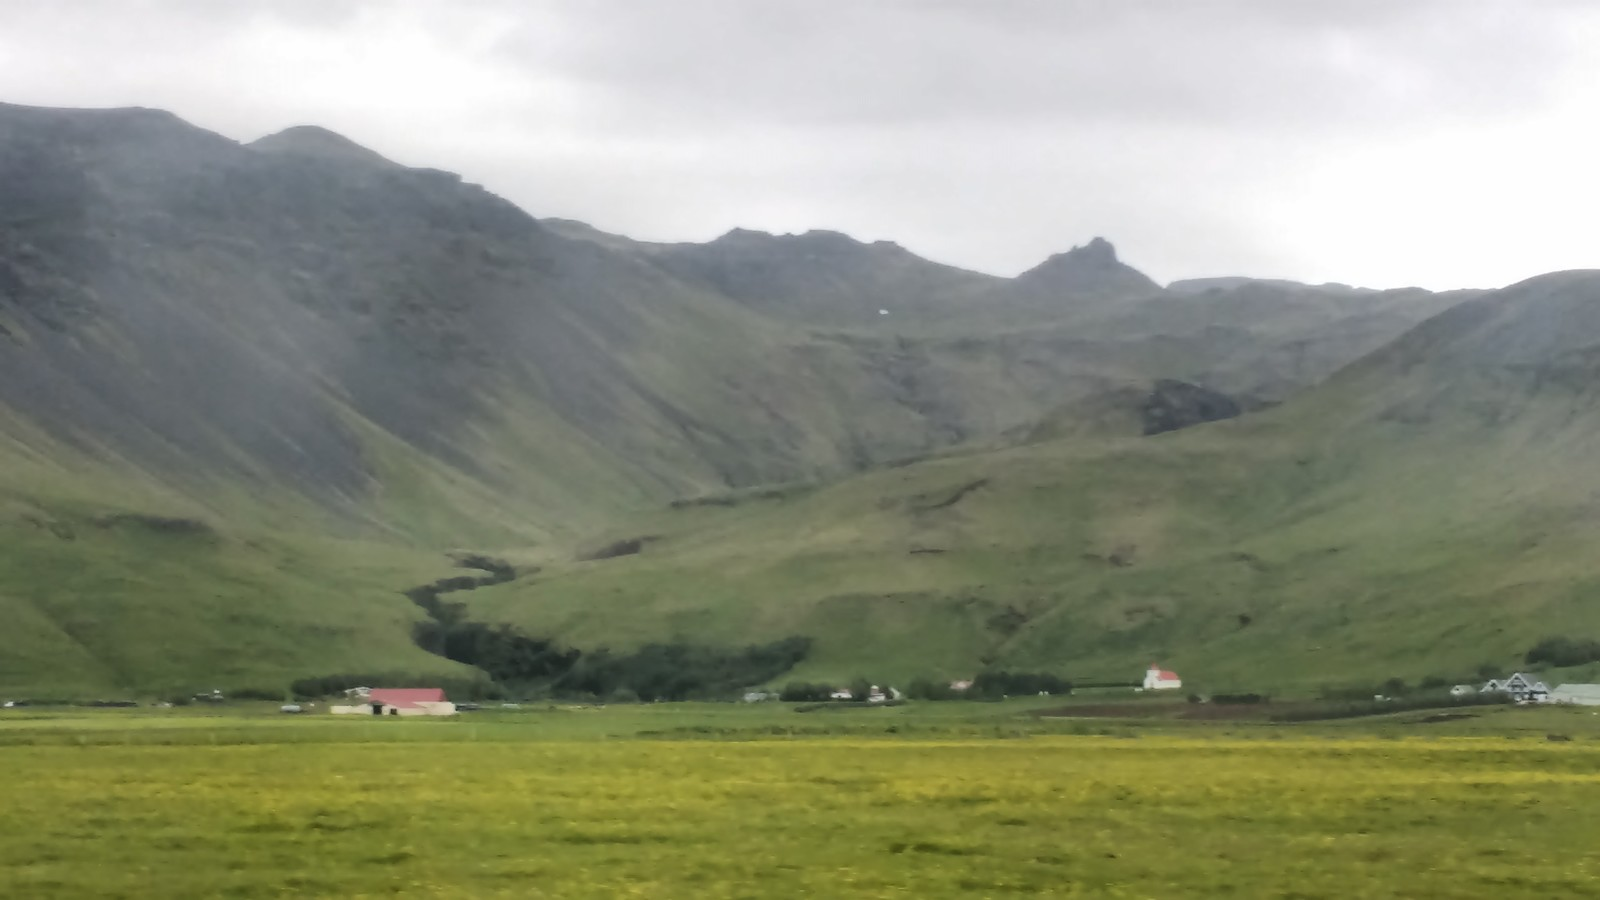 My own picture from Iceland, taken from inside the window of our beleaguered Toyota Aygo